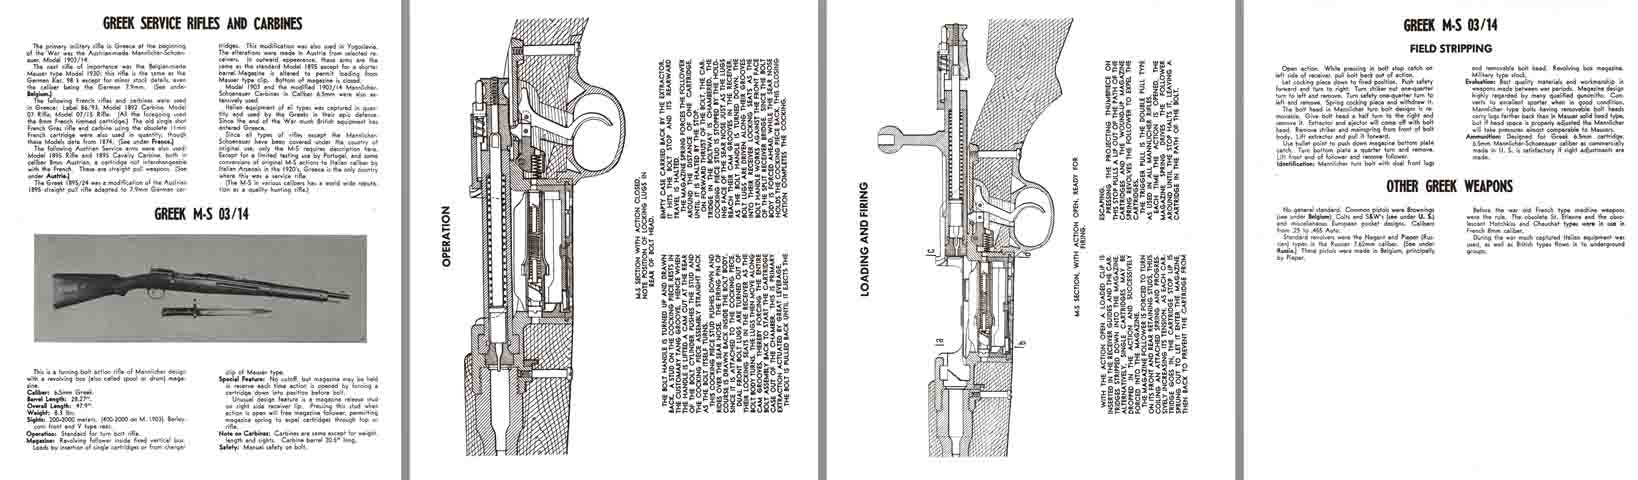 Greek WWII Rifles & Carbines Description & M-S 03/14 Manual